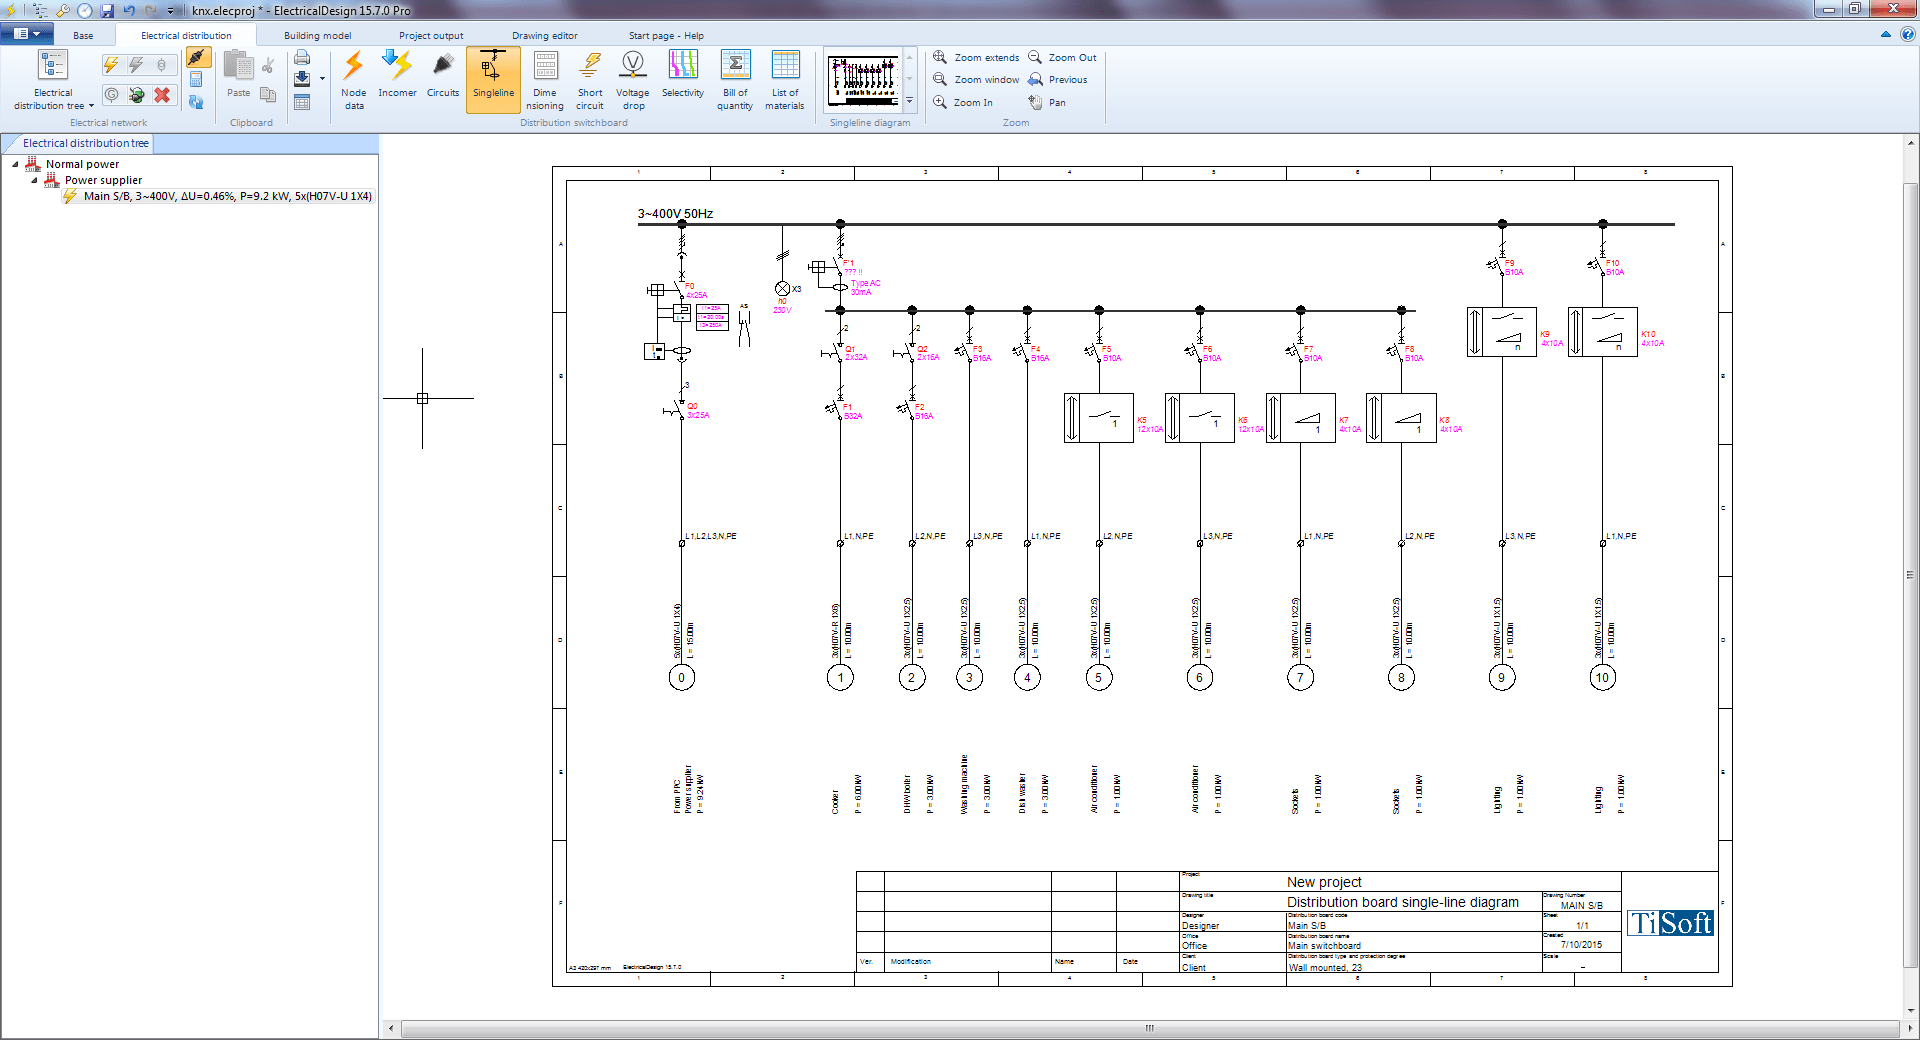 hight resolution of  knx smart designs and installations with i bus knx knx lighting control wiring diagram